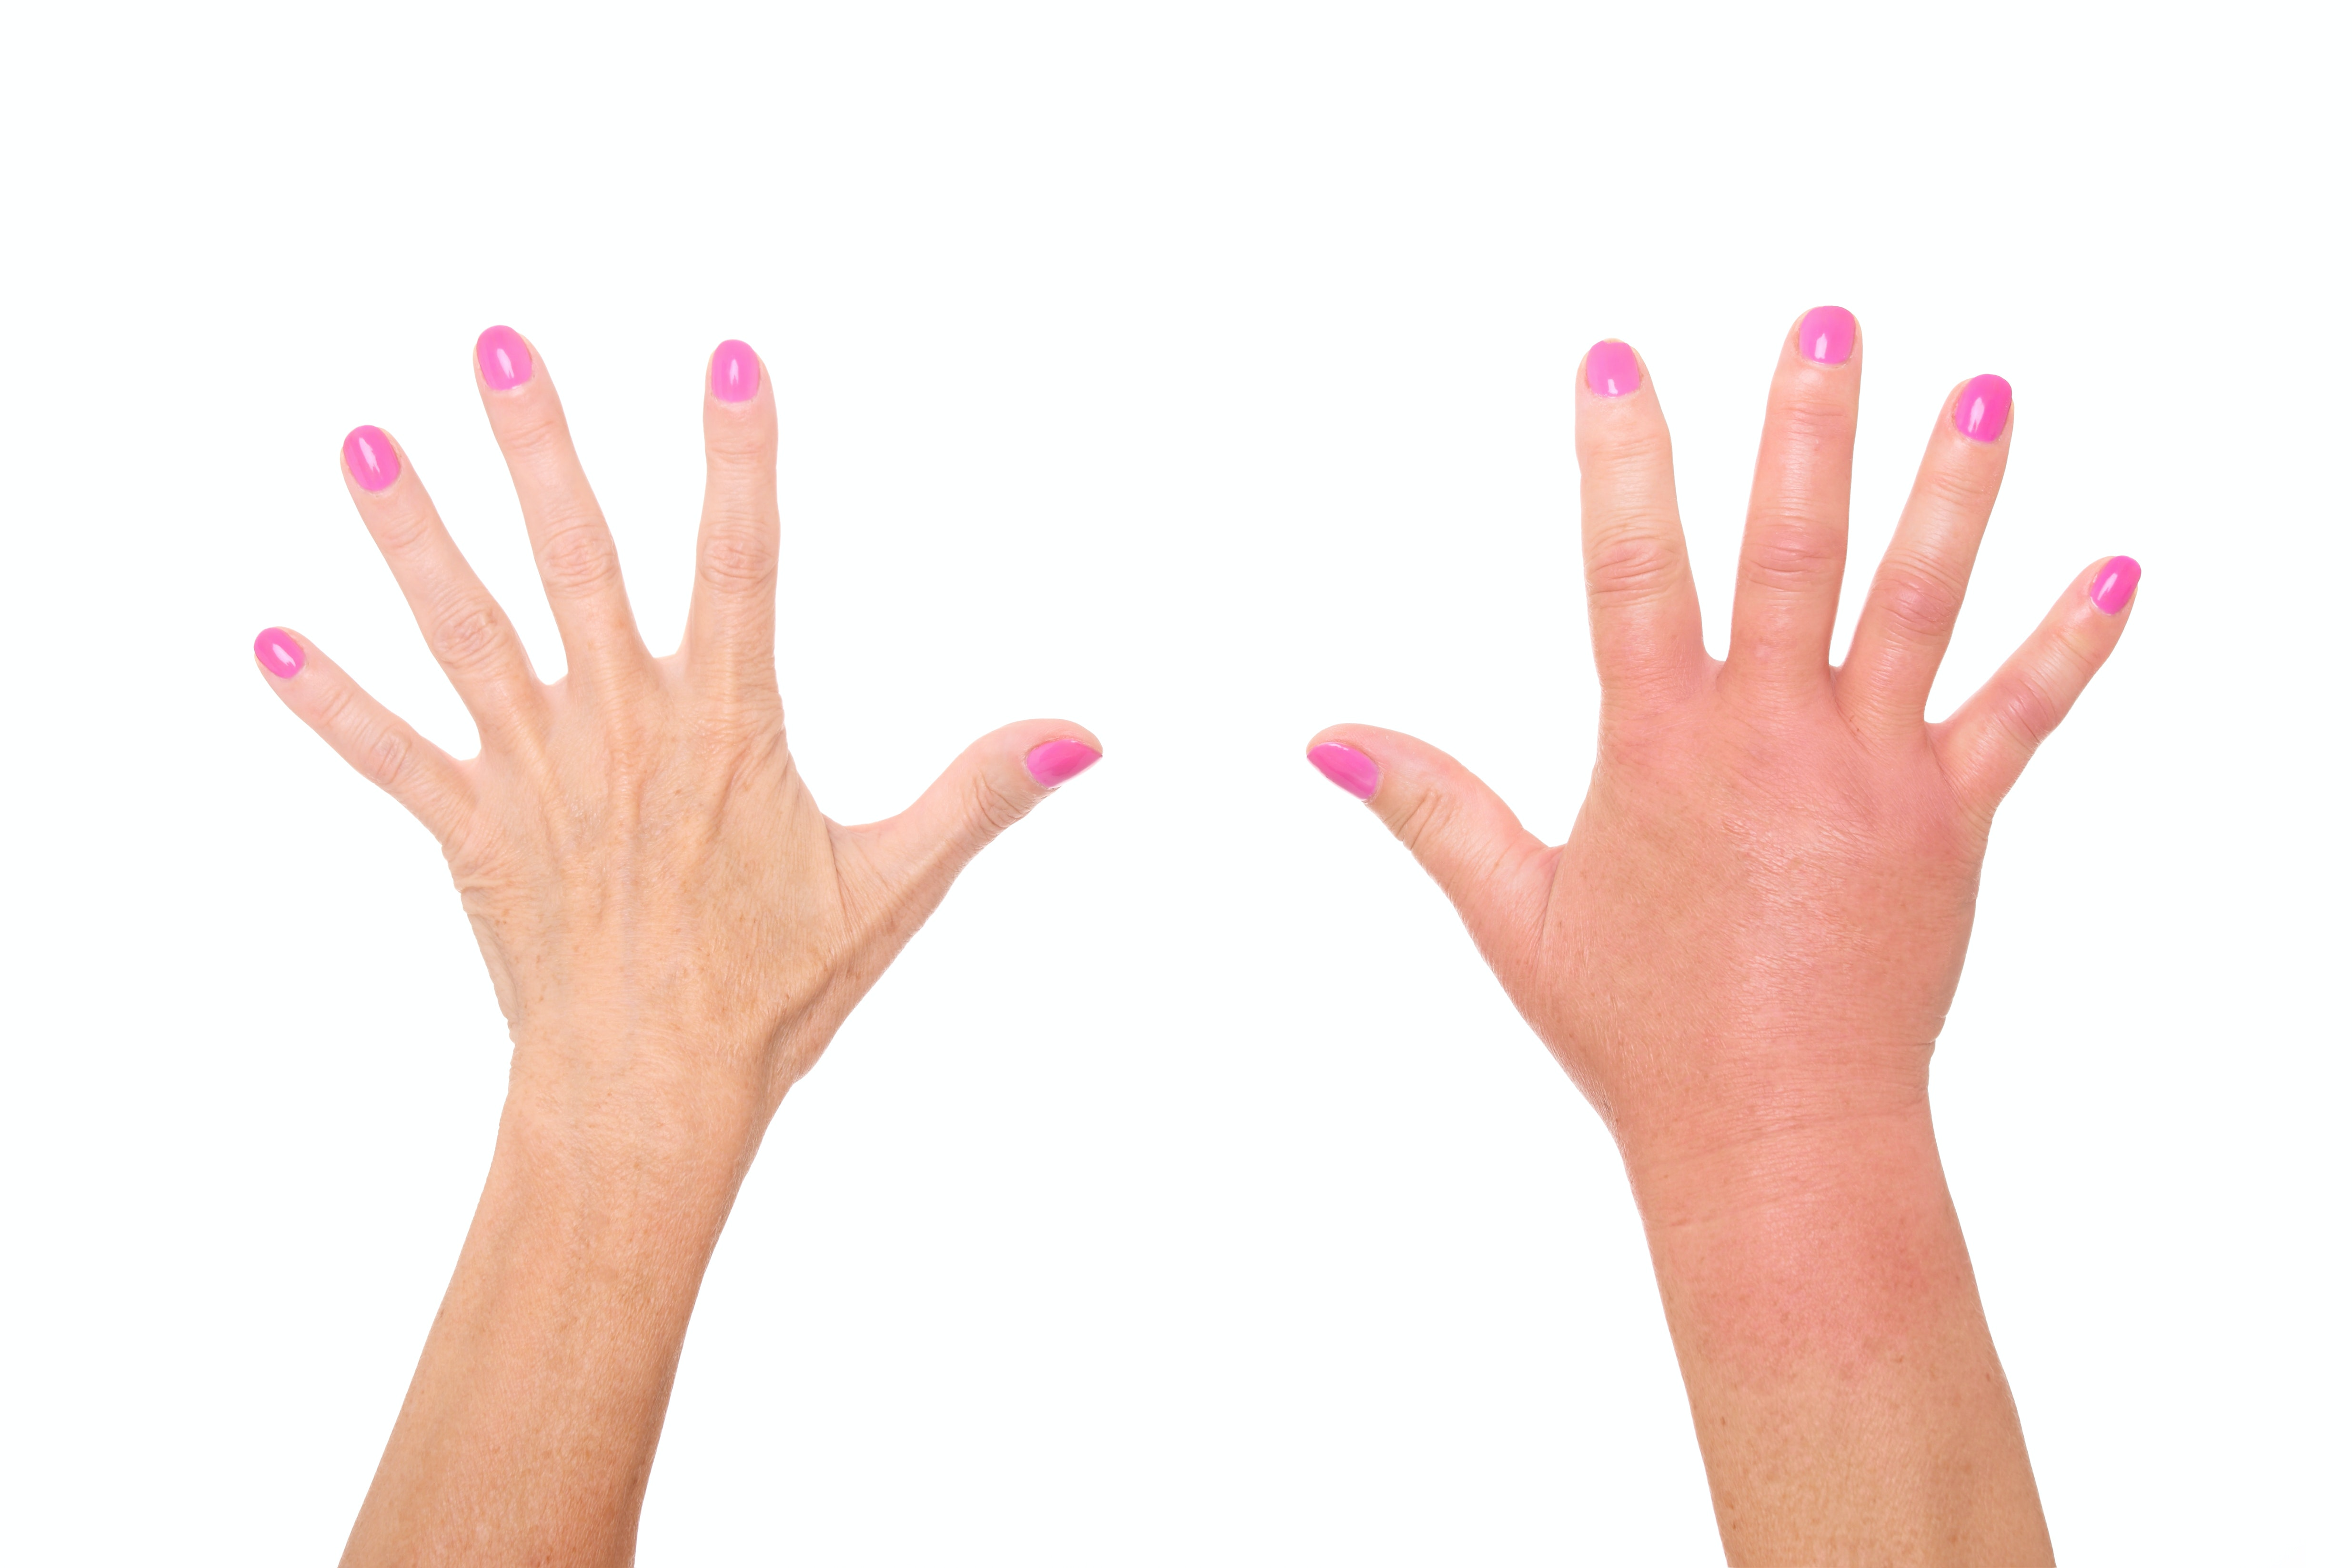 An image depicting a person suffering from warm and red hand swelling symptoms